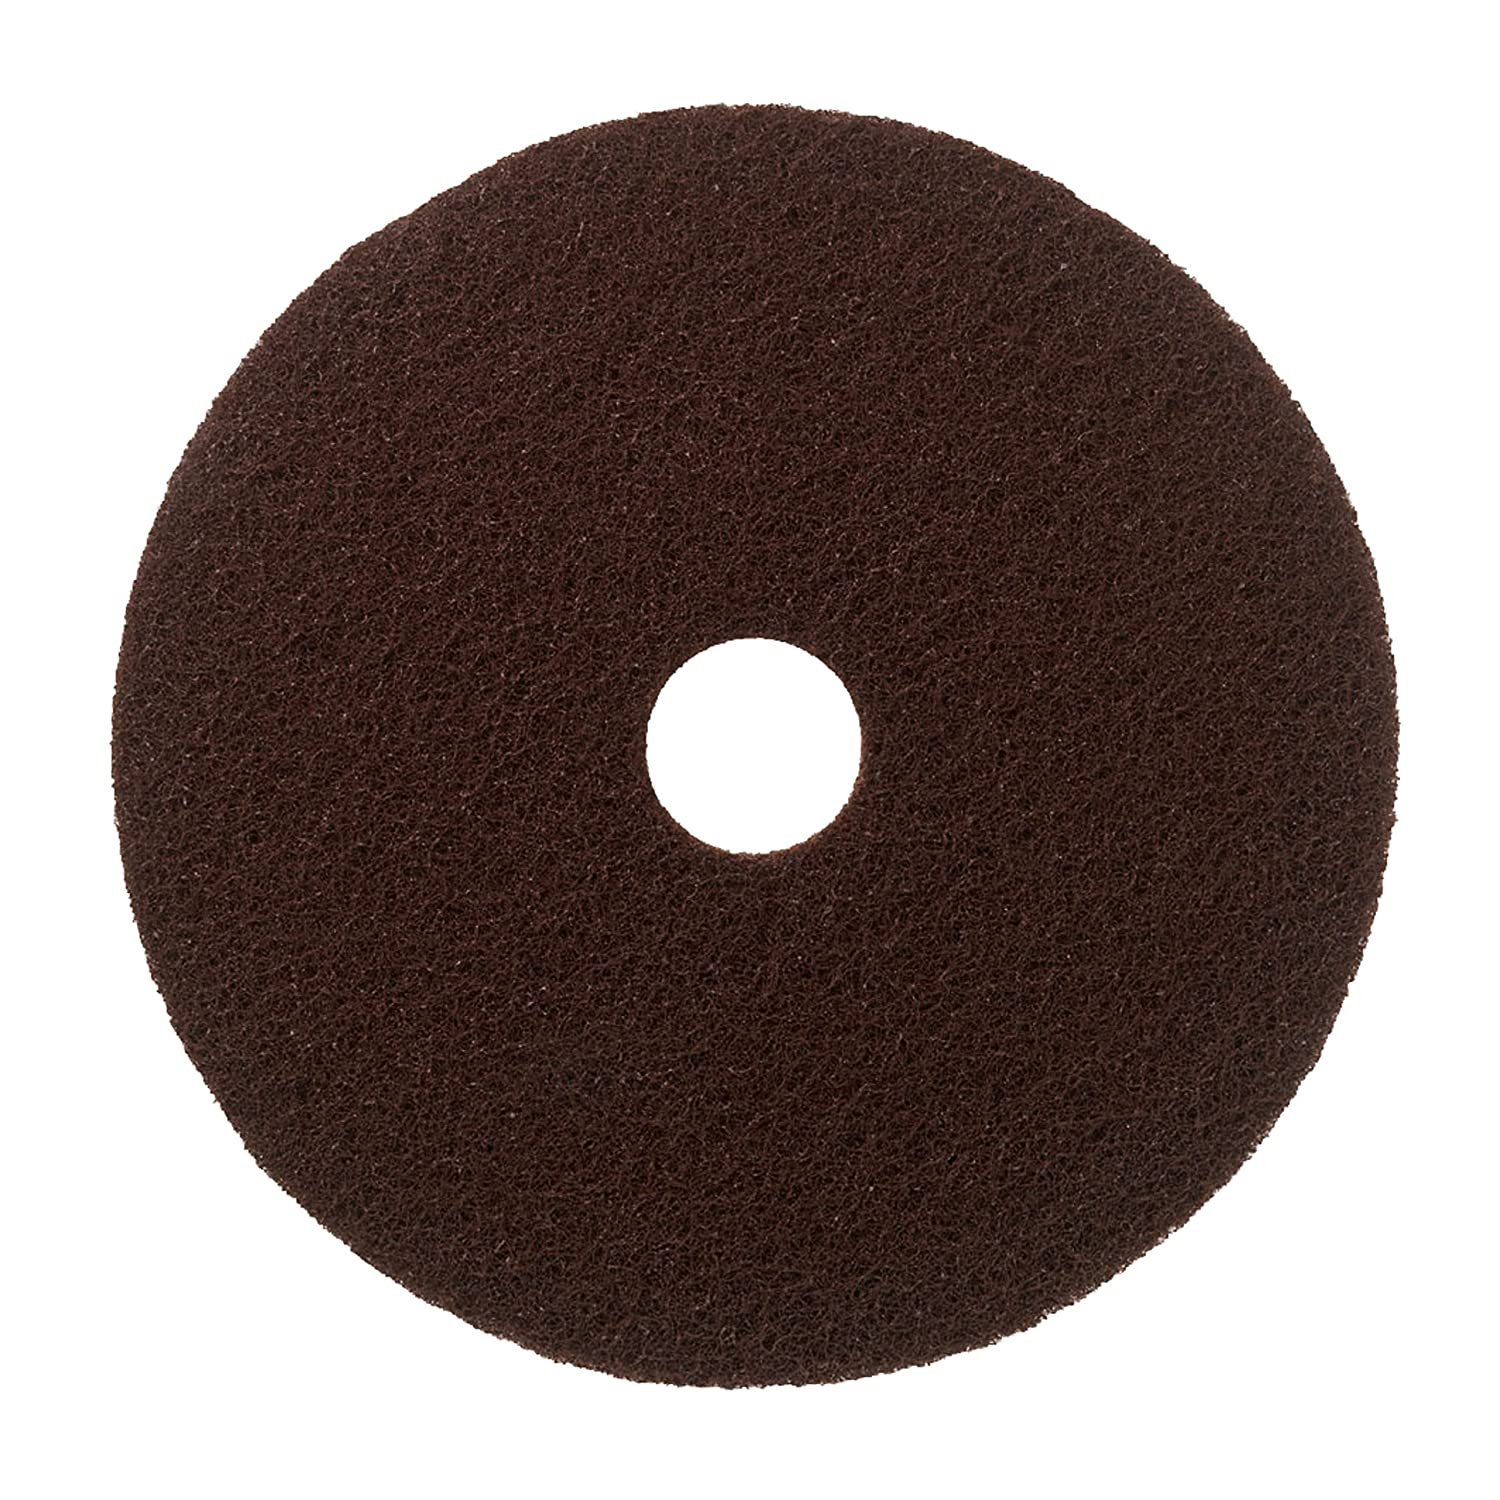 Scotch-Brite™ Floor Pads, Brown, 330 mm, 5/Case 3M 7000077568